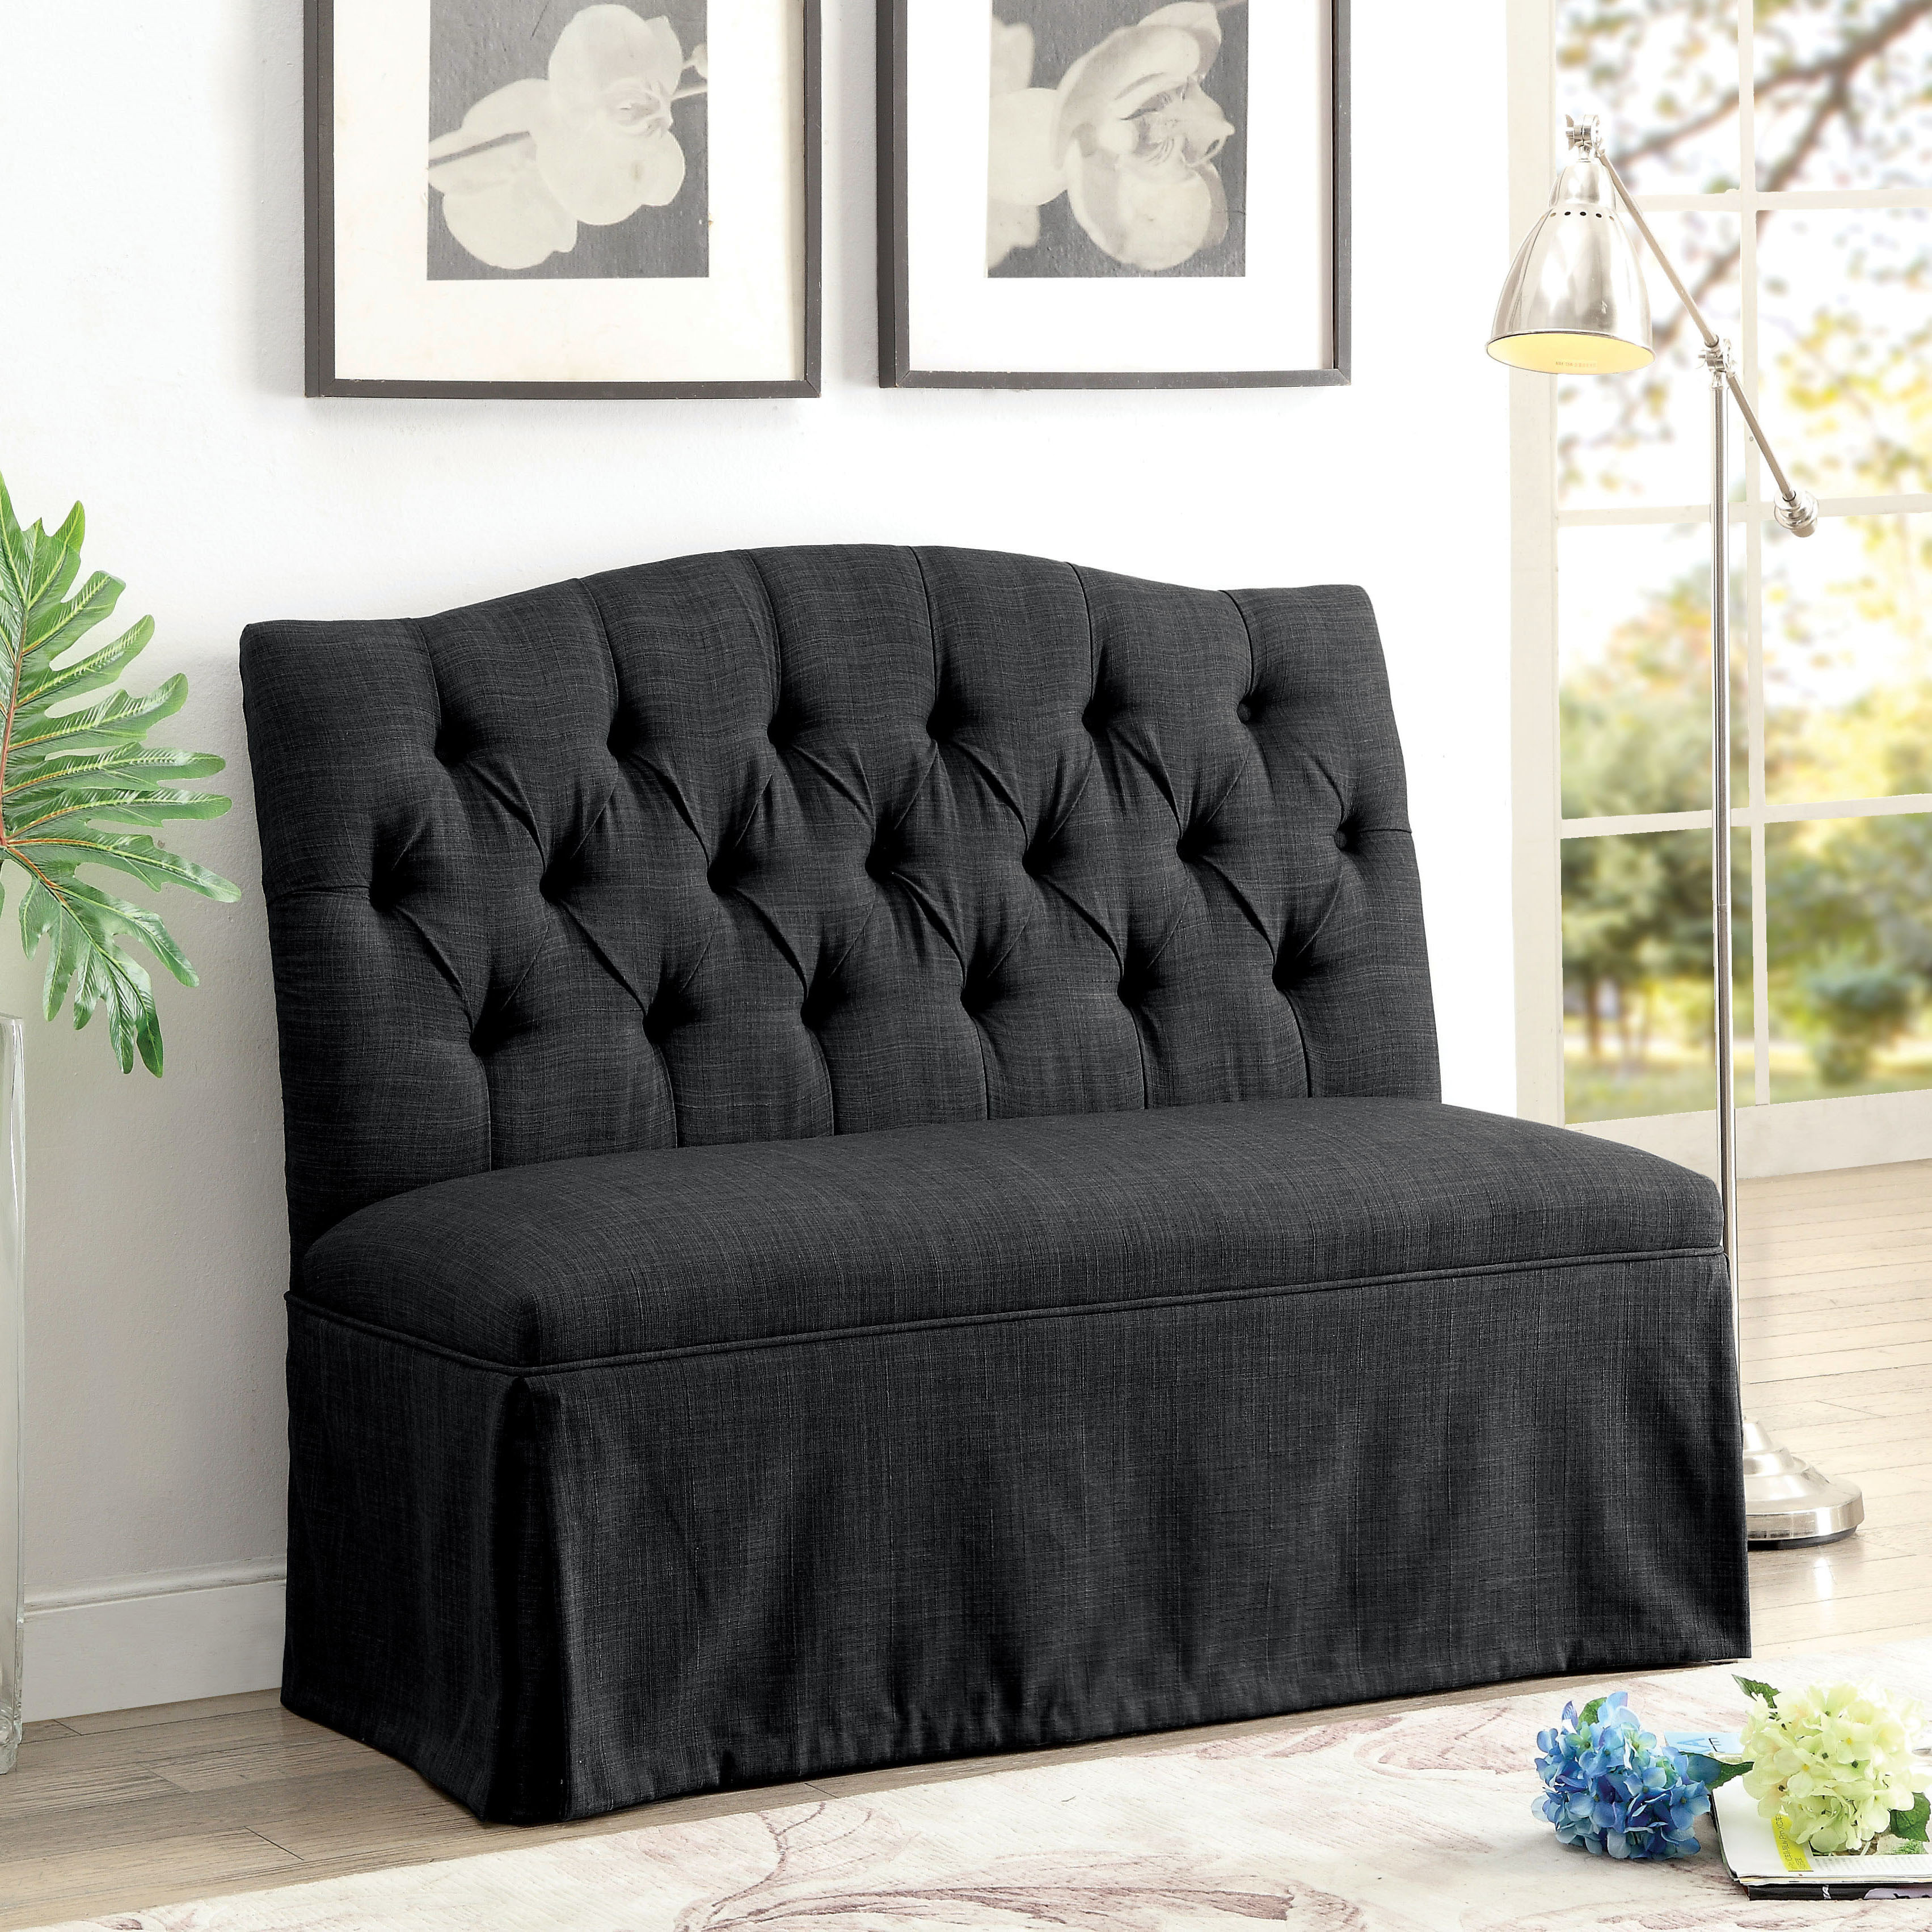 Furniture of America Jahaven III Contemporary Loveseat Bench by FOA